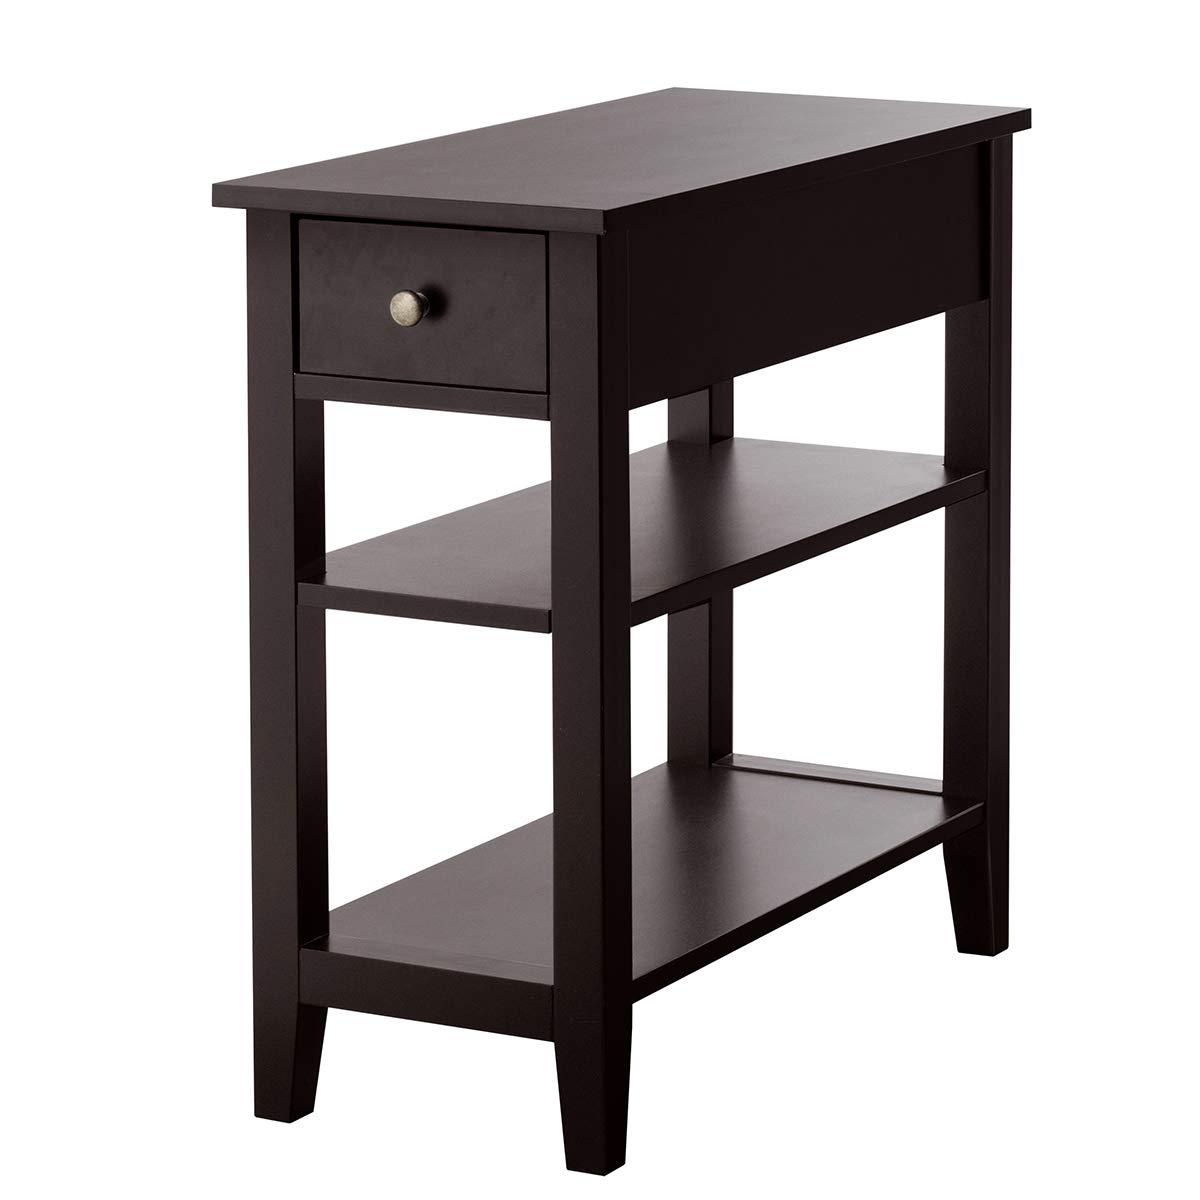 Giantex 3-Tier End Table with Drawer and Double Shelves Narrow Tiered Side Table for Bedroom, Living Room Home Office Telephone Table Nightstand 1, Dark Brown